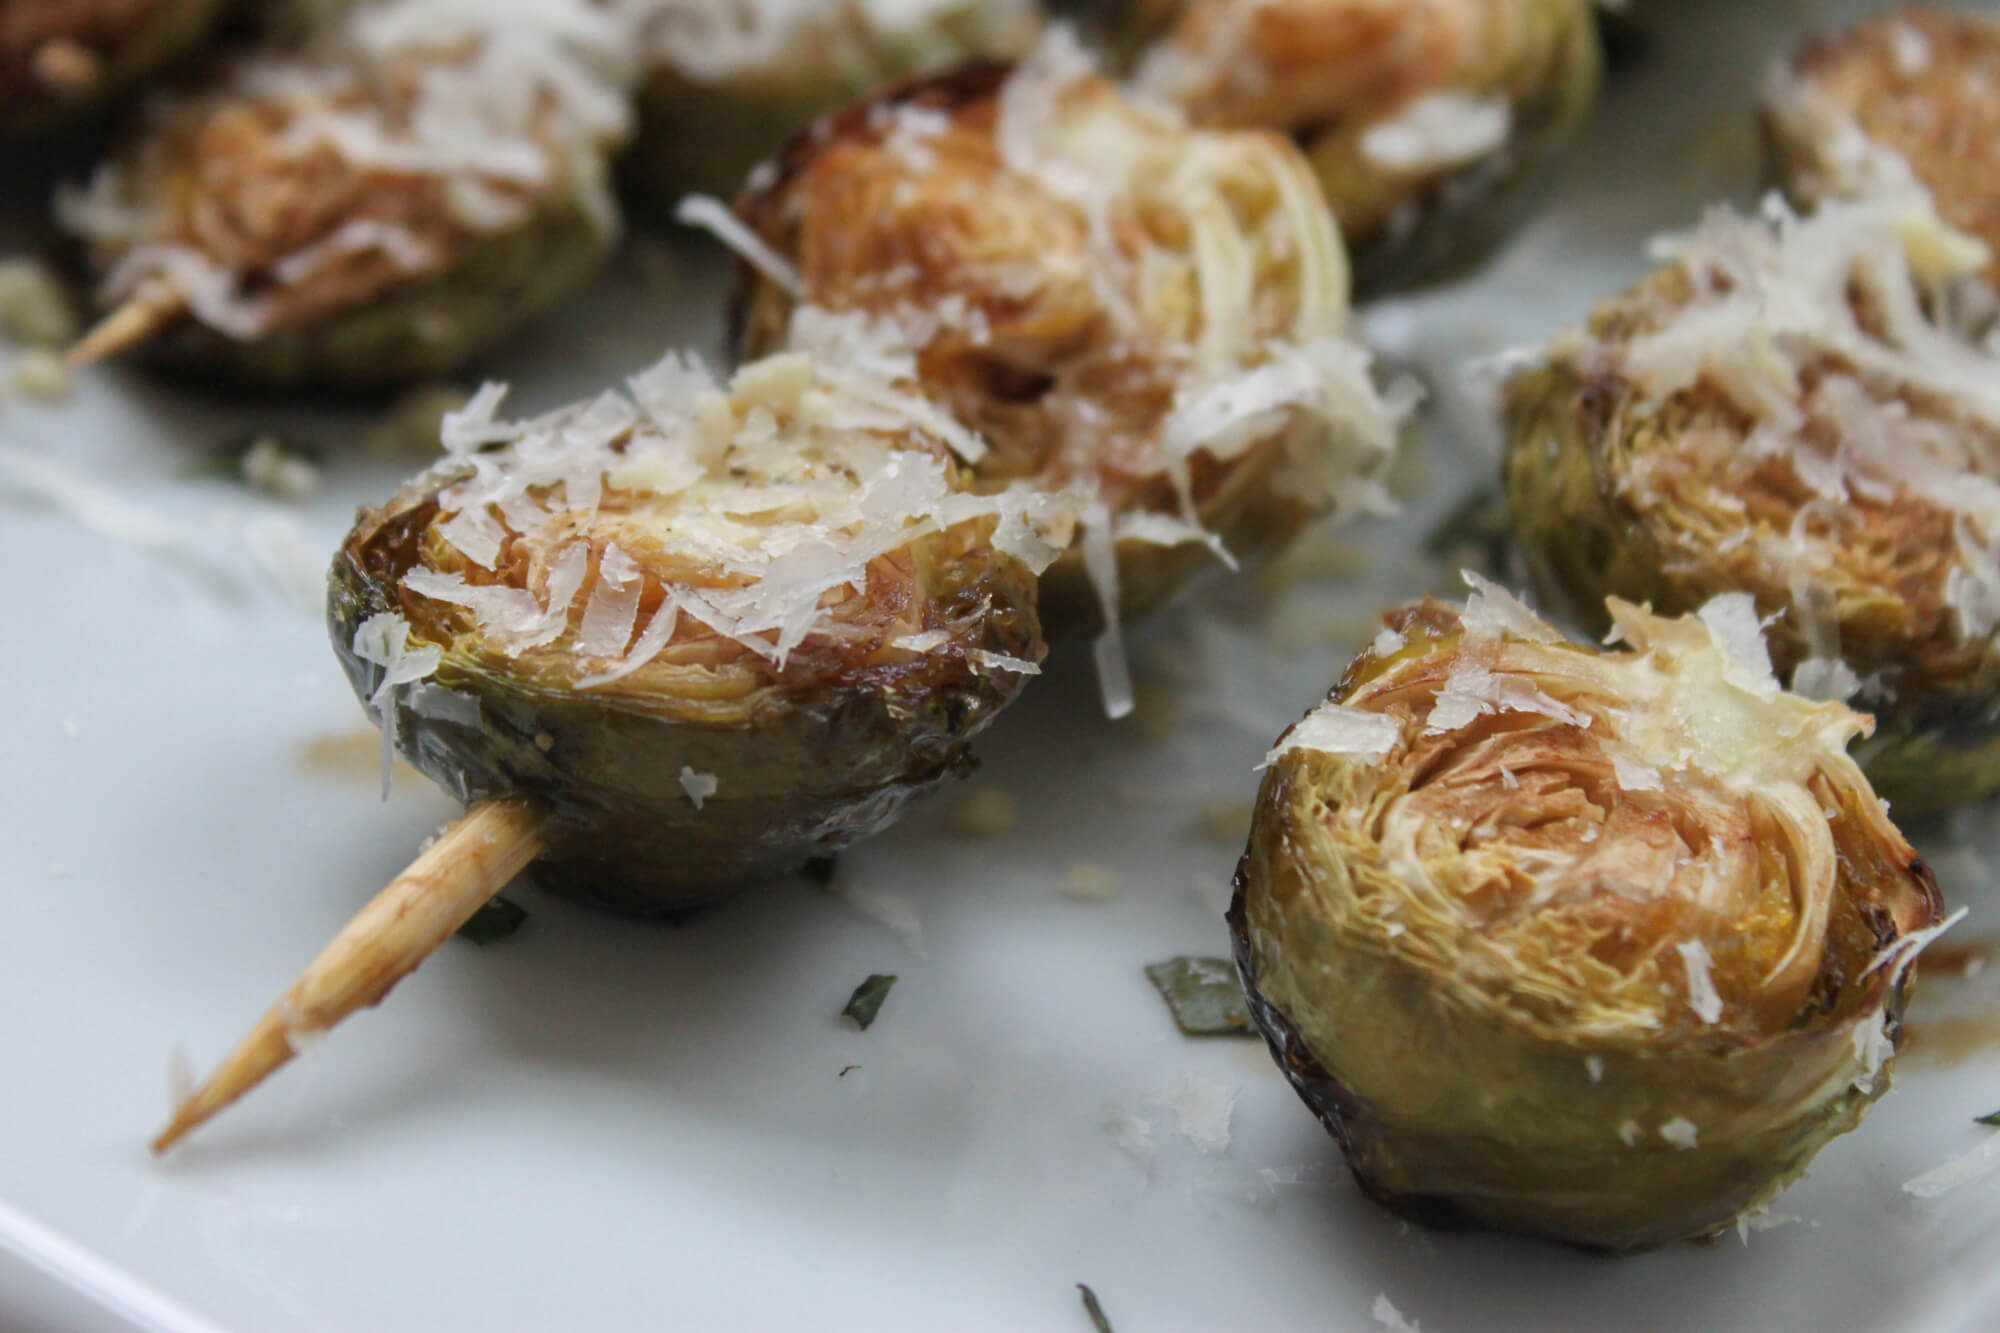 roasted brussels sprouts skewer 1